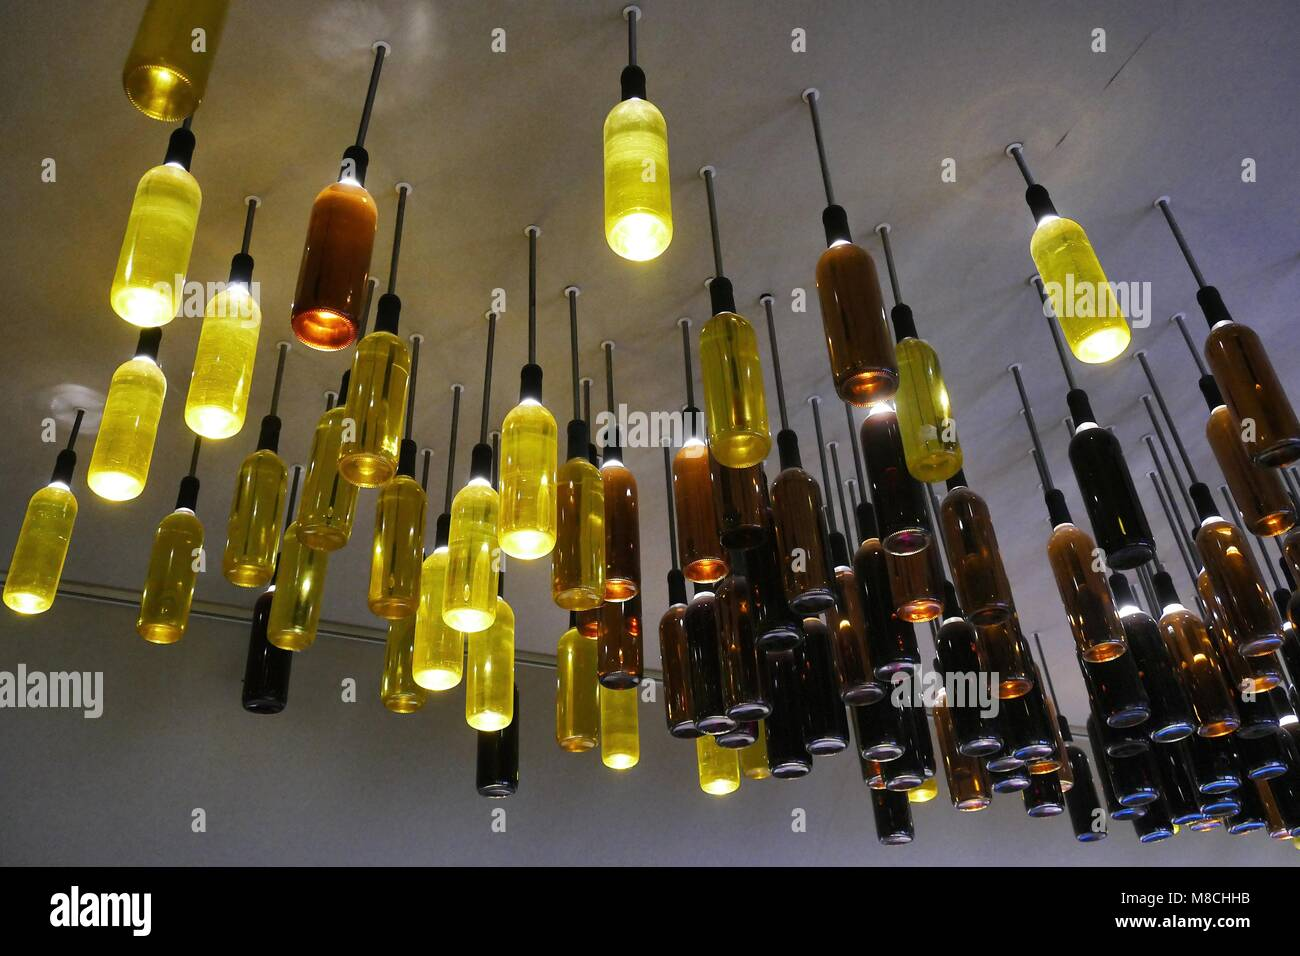 Creative reuse of wine bottles as lamps installed on the ceiling - Stock Image